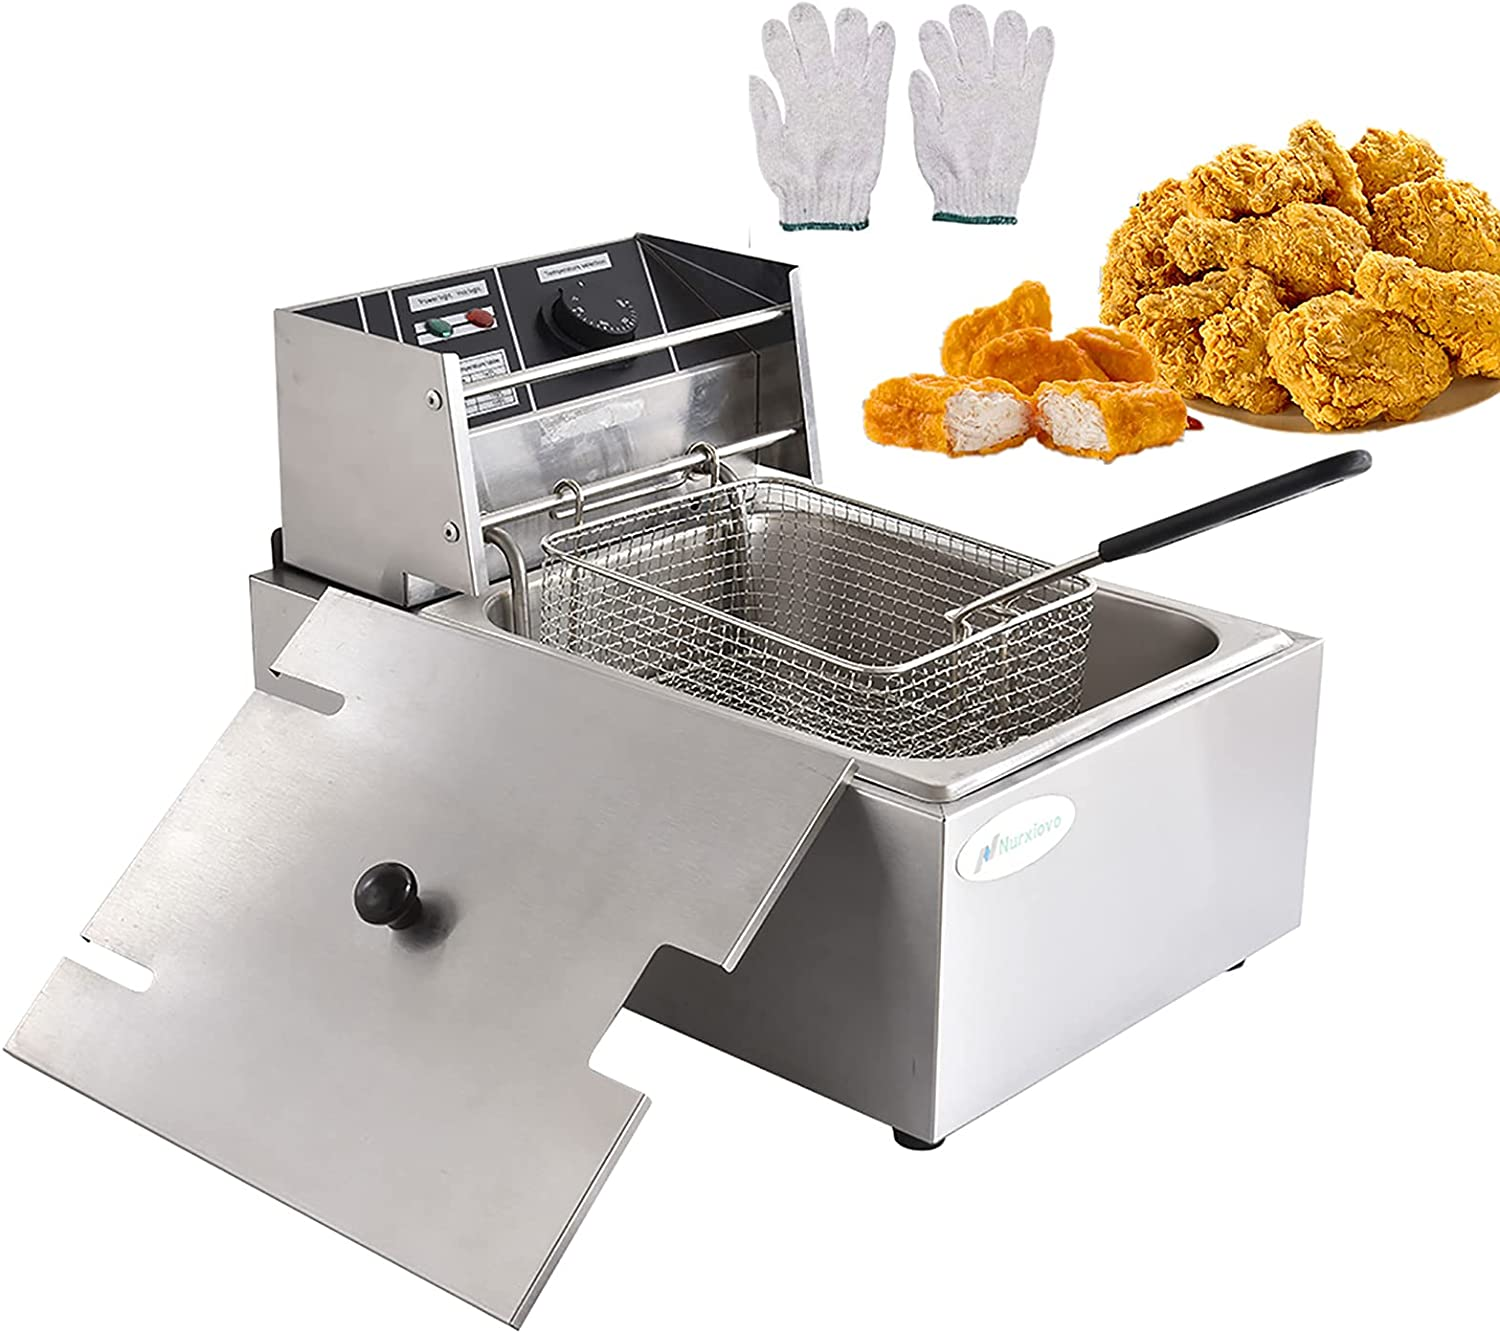 Commercial Electric Deep Fryer, 1800W 8L Single Tank, Countertop Kitchen Frying Machine With Basket & Lid, Stainless Steel French Fryer Oil Fryer For French Fries Fish Turkey Chips Restaurant Home